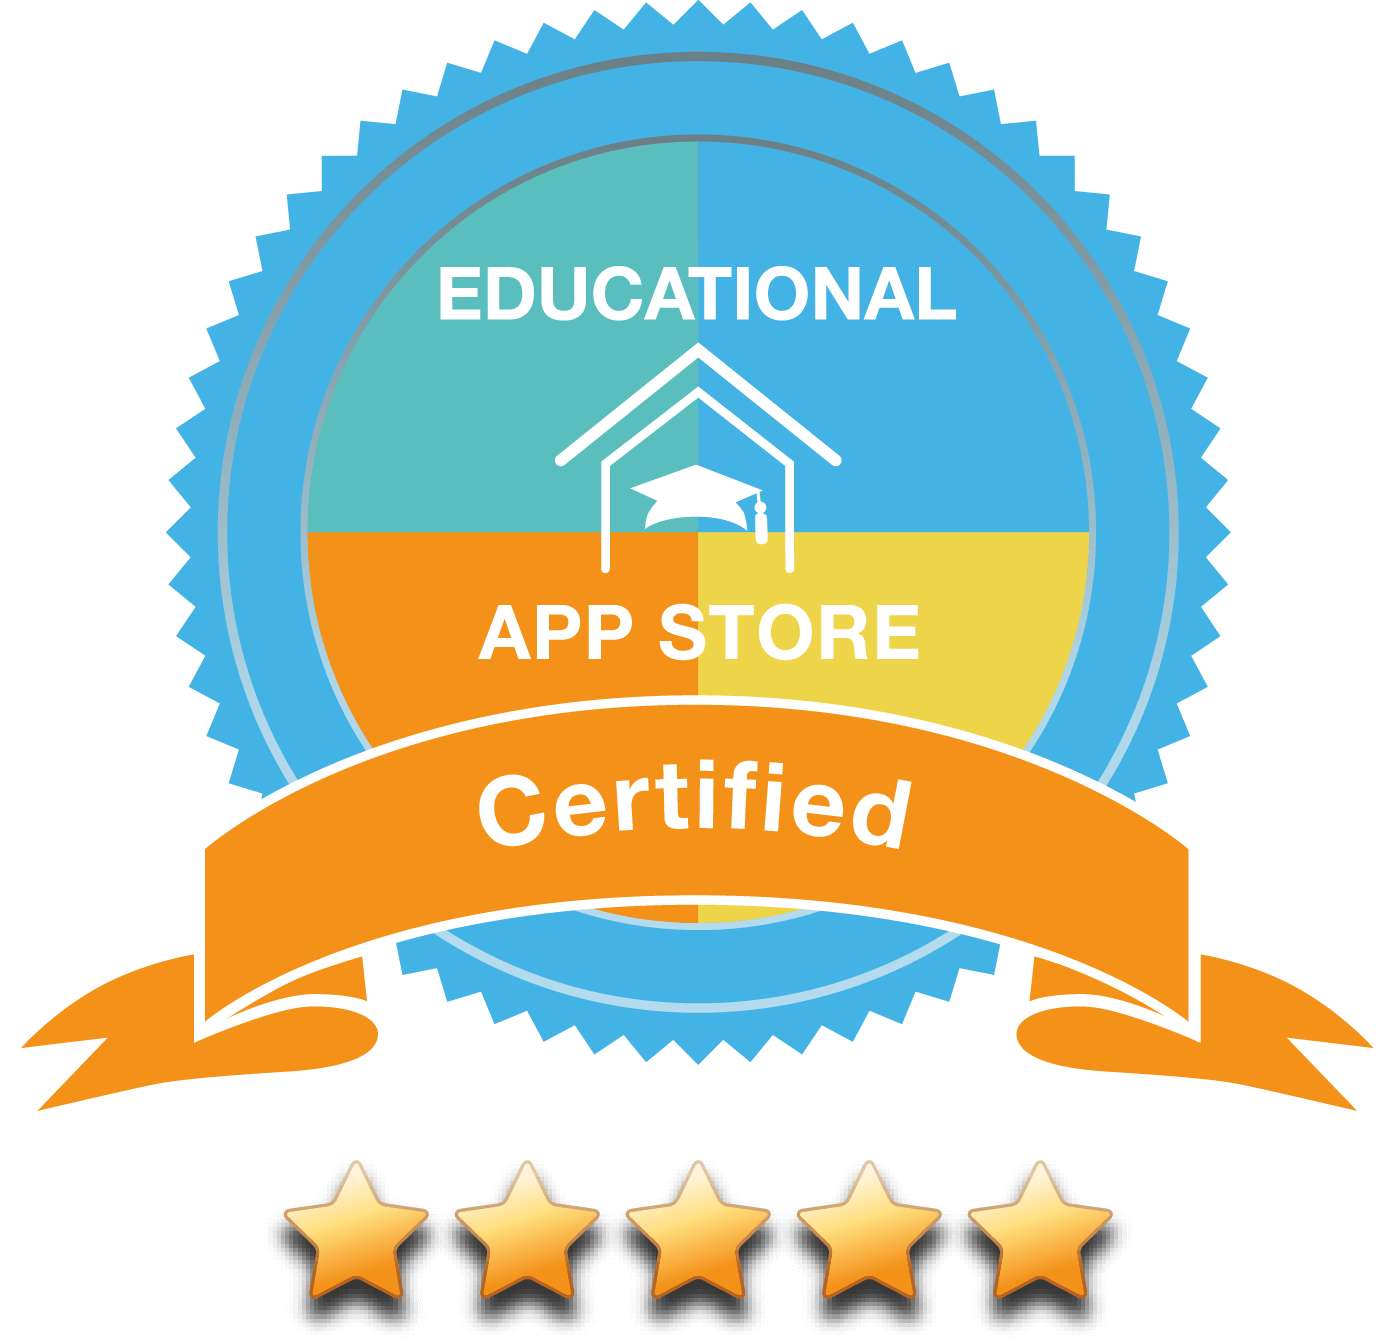 Certified by the Educational App Store